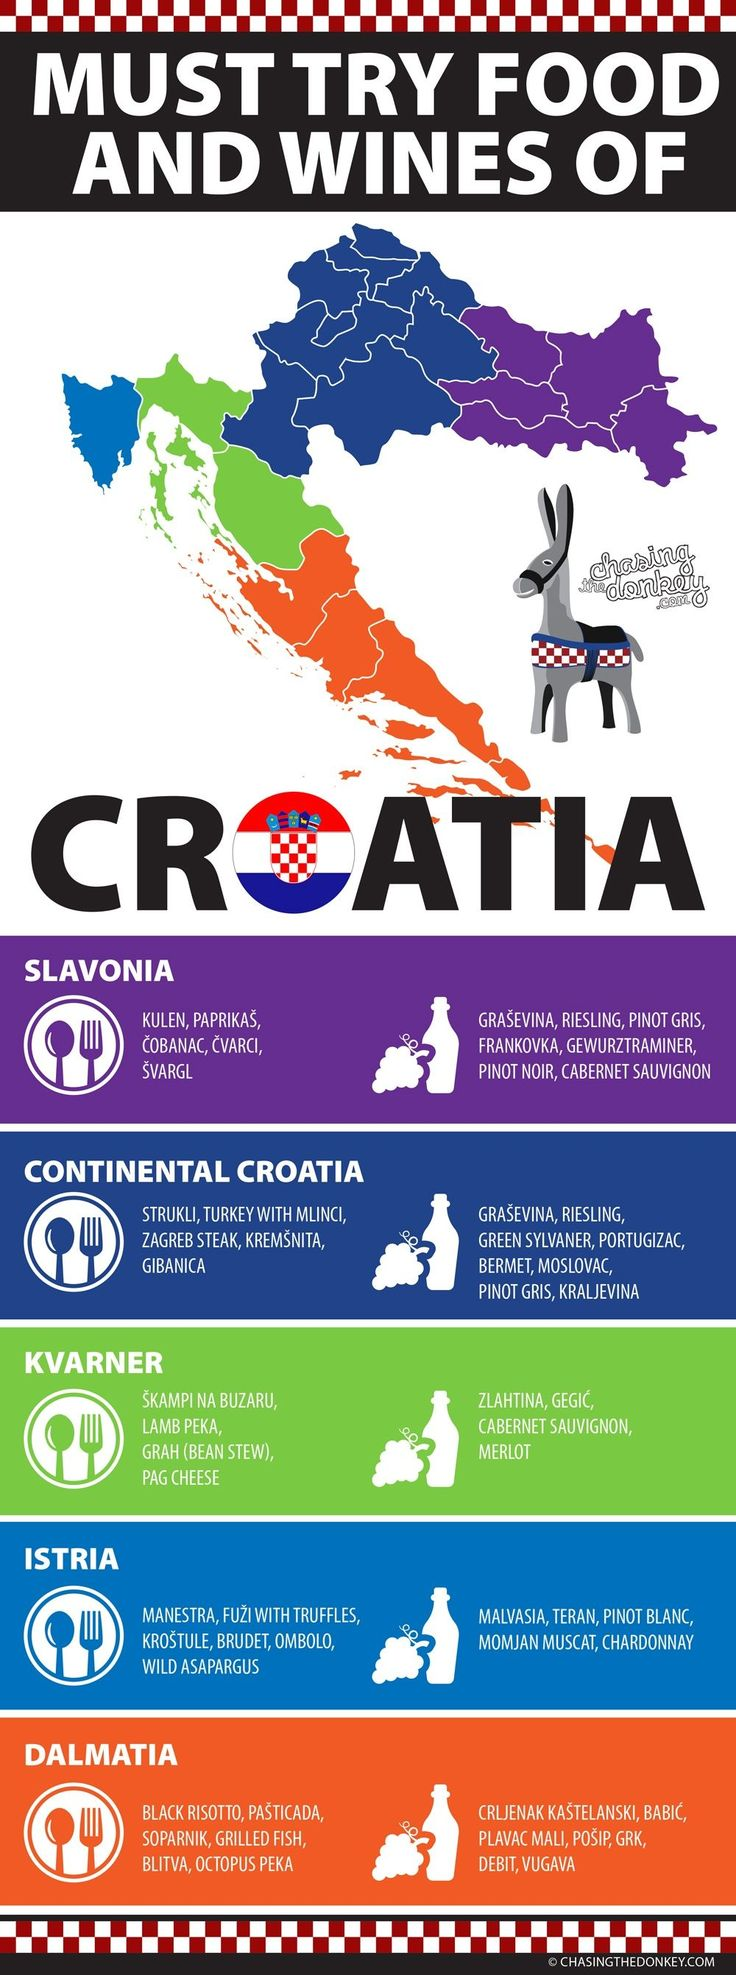 Food and Wine Not to be Missed in Croatia | Croatia Travel Blog |  Buy air tickets: | http://2track.info/Jl1s/